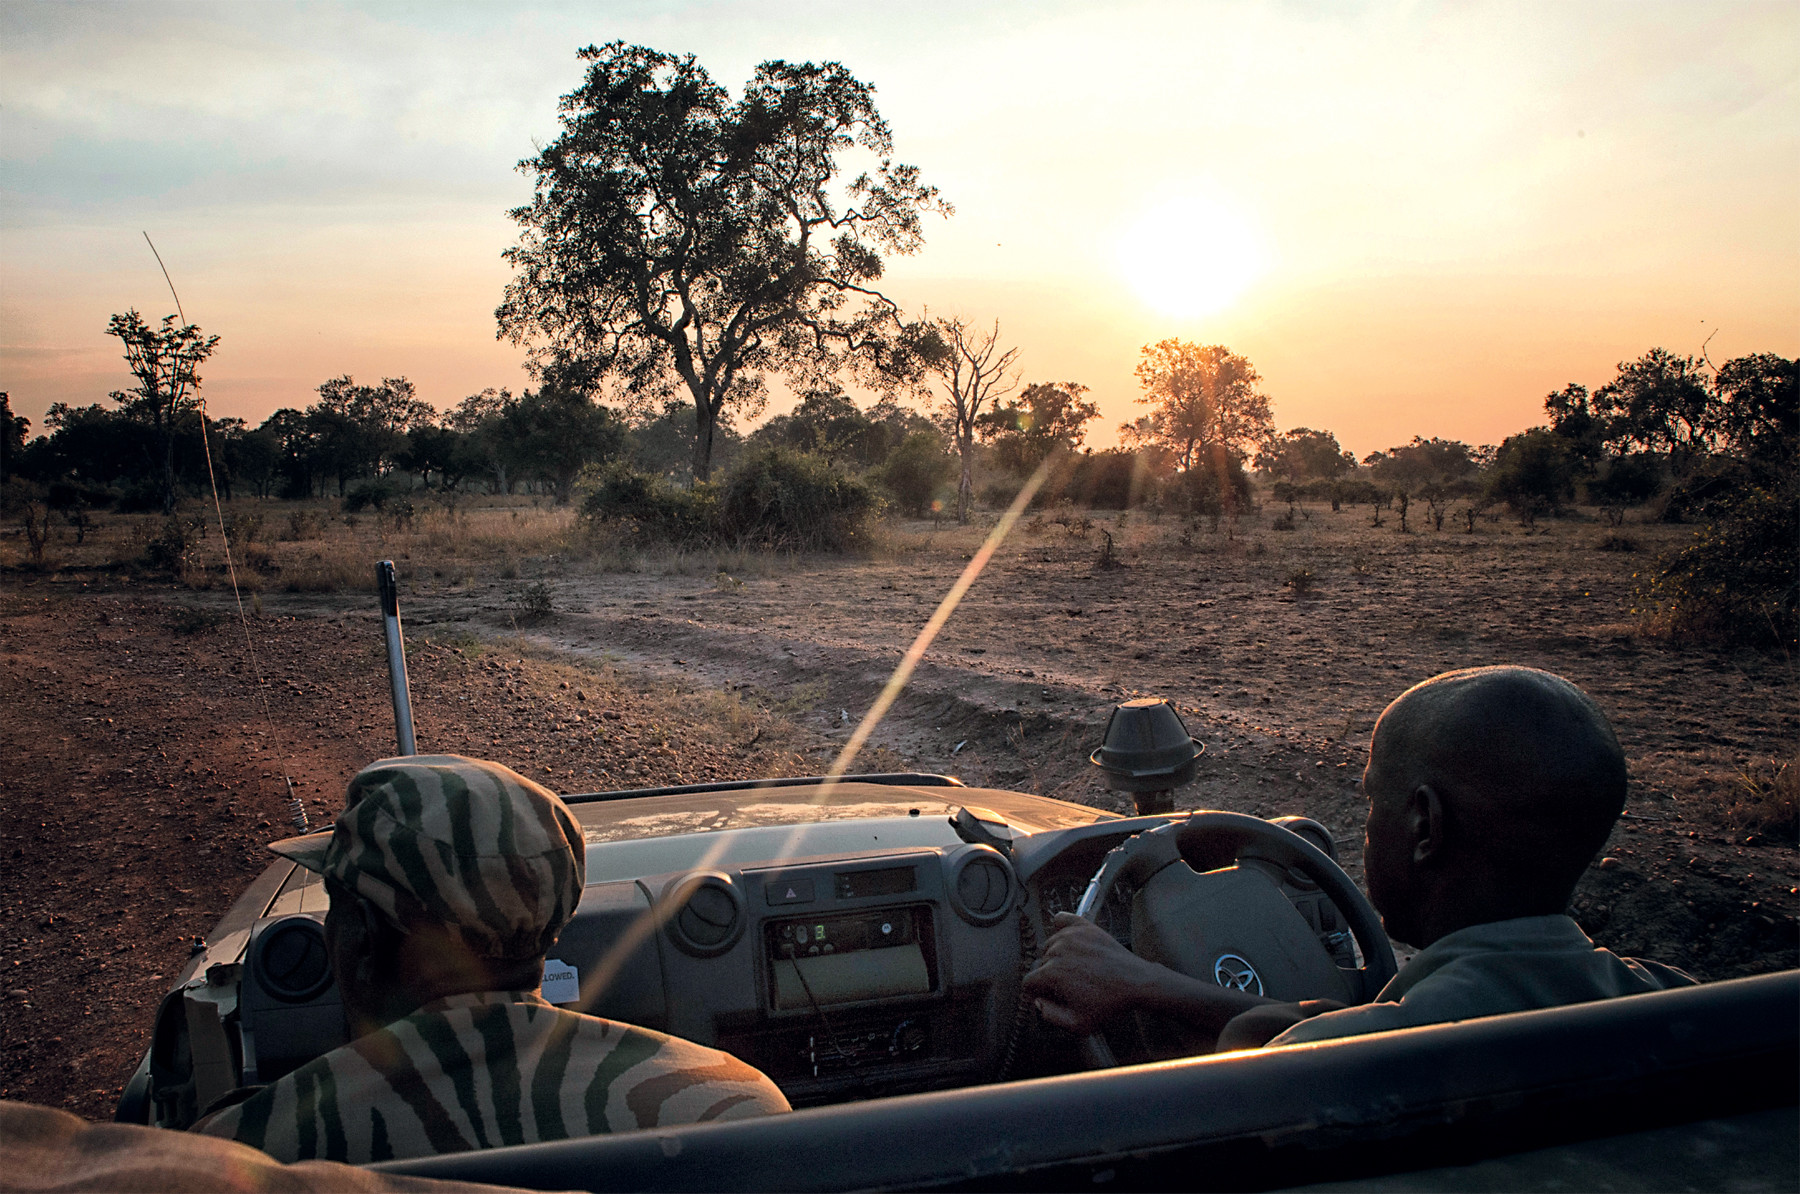 Op safarit in nationaal park South Luangwa in Zambia. Foto: Michael Dehaspe